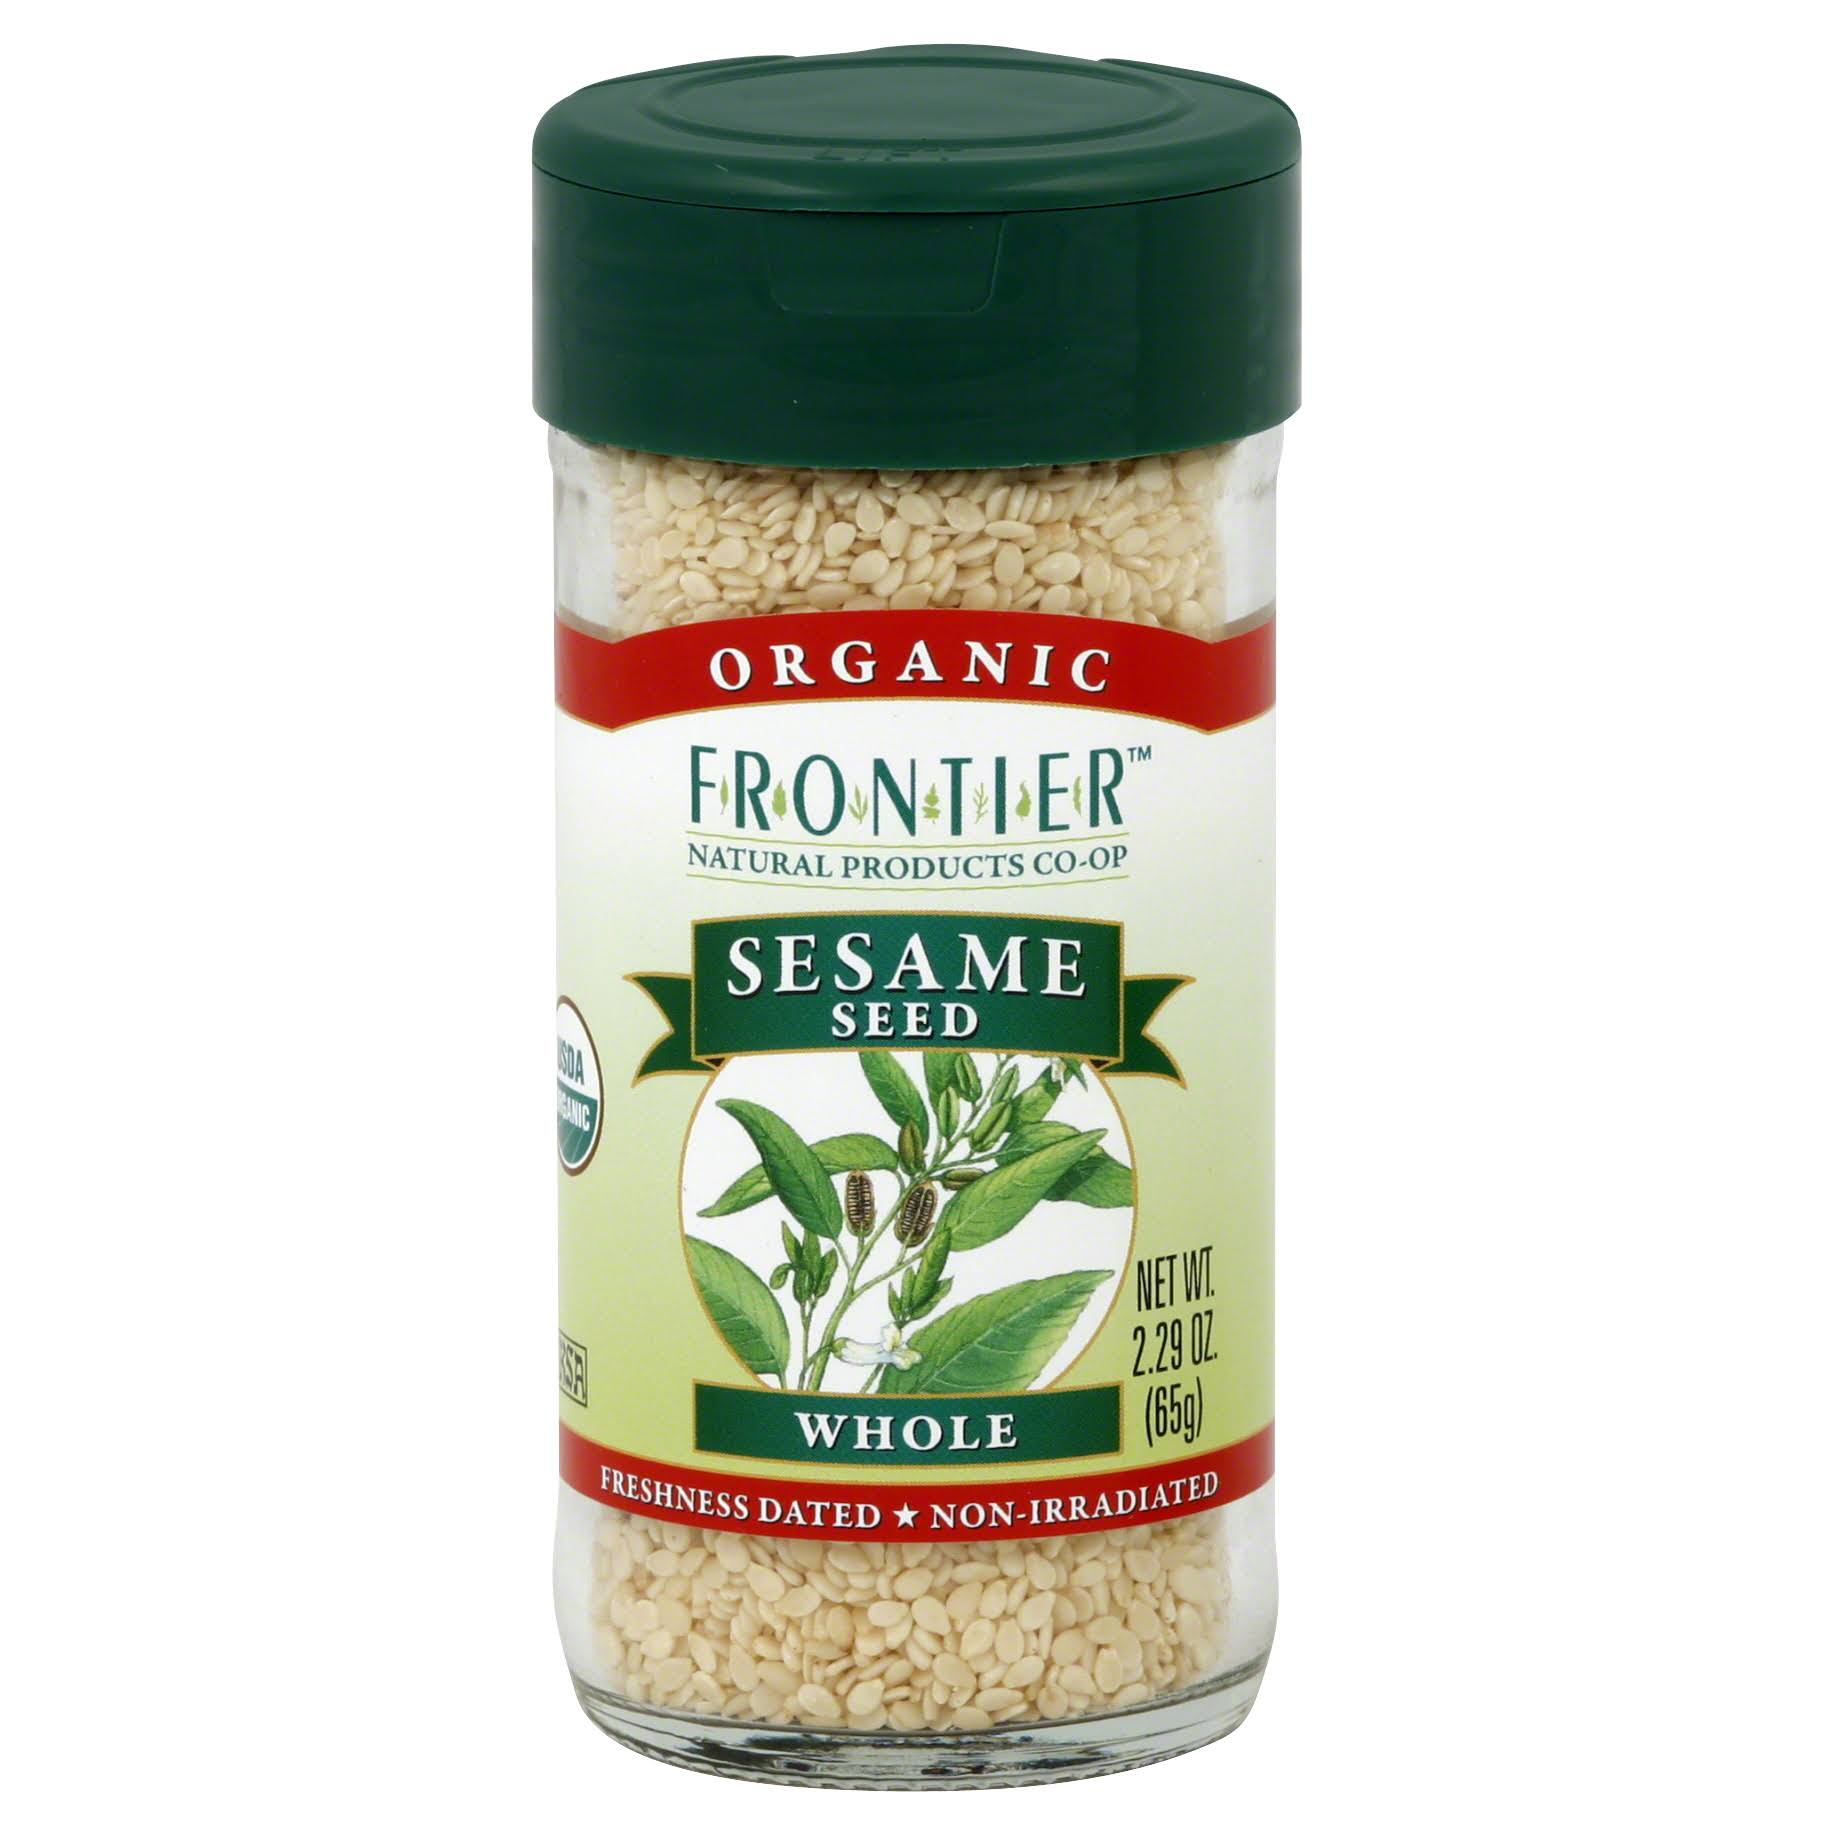 Frontier Herb Organic Sesame Seed - Whole, 2.32oz